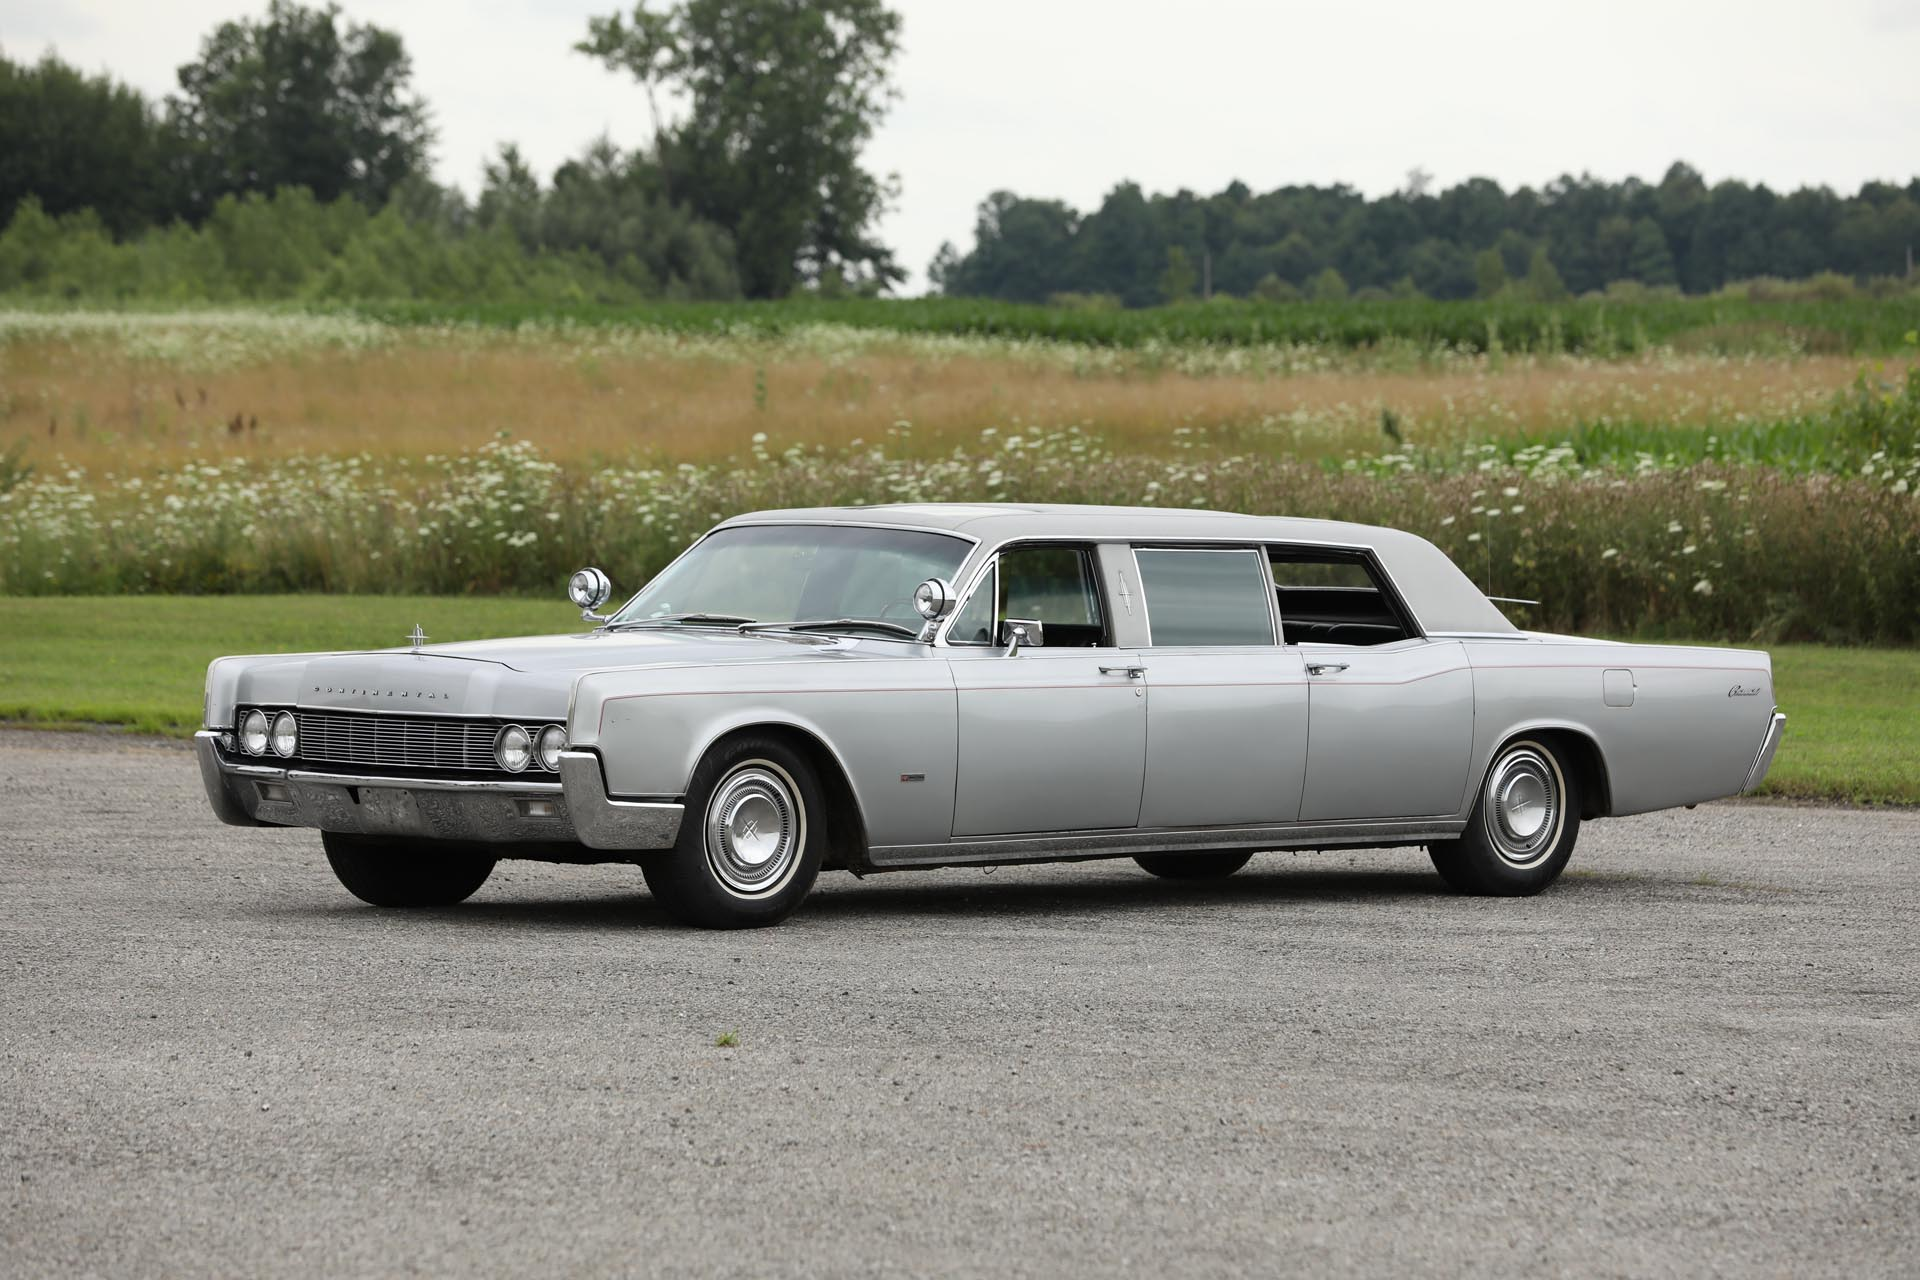 1967 Lincoln Continental Lehmann-Peterson Limousine